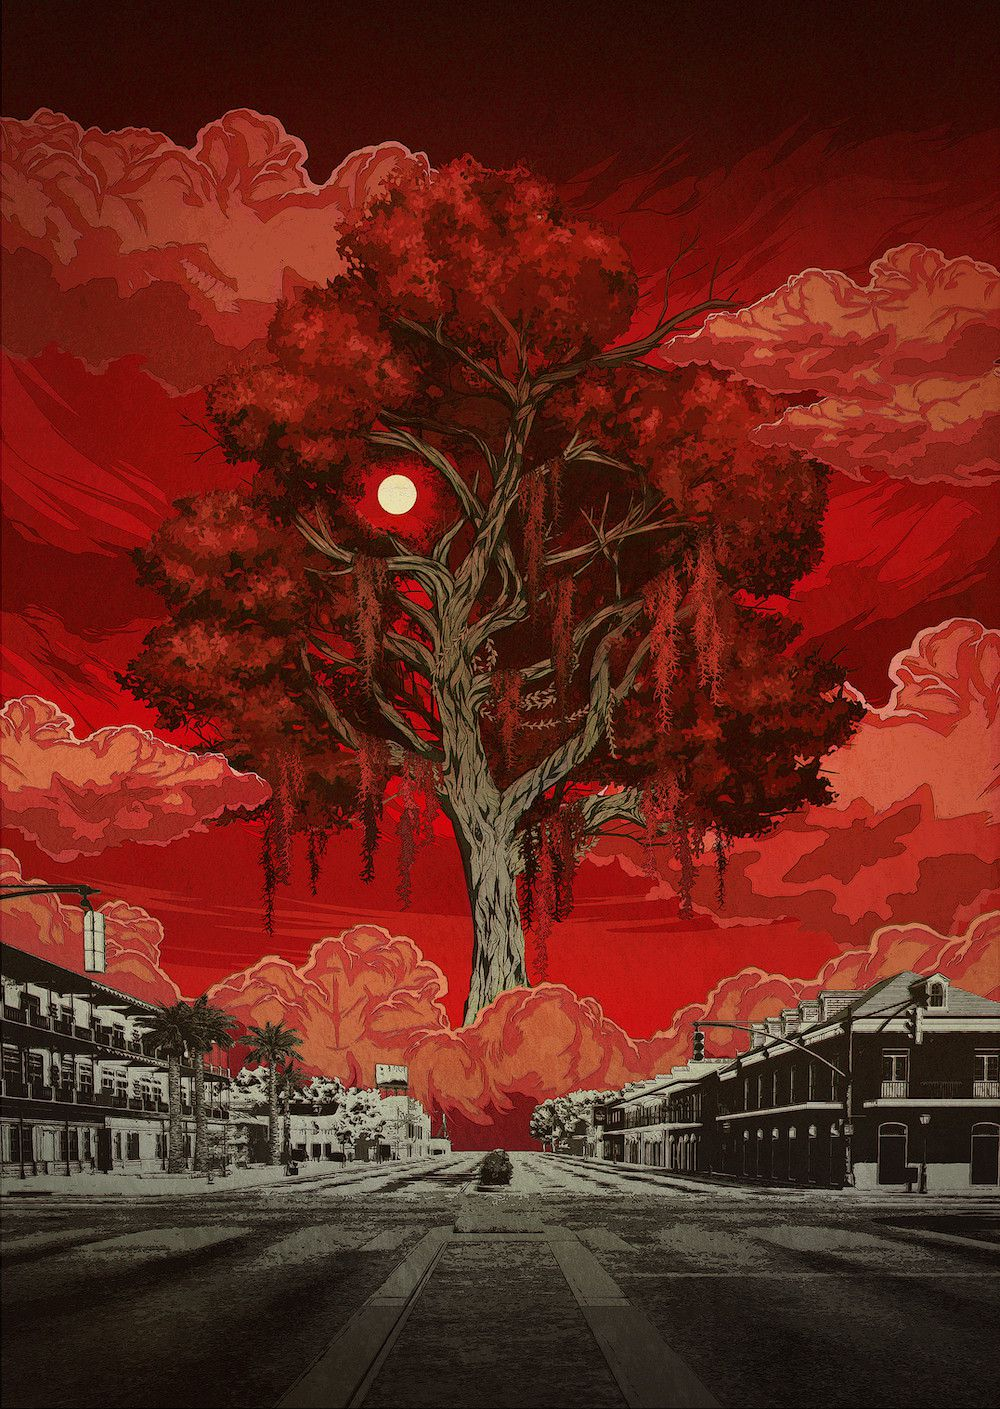 Deadly Premonition 2: A Blessing In Disguise key art showing the moon thawing through a tree against a blood-red sky